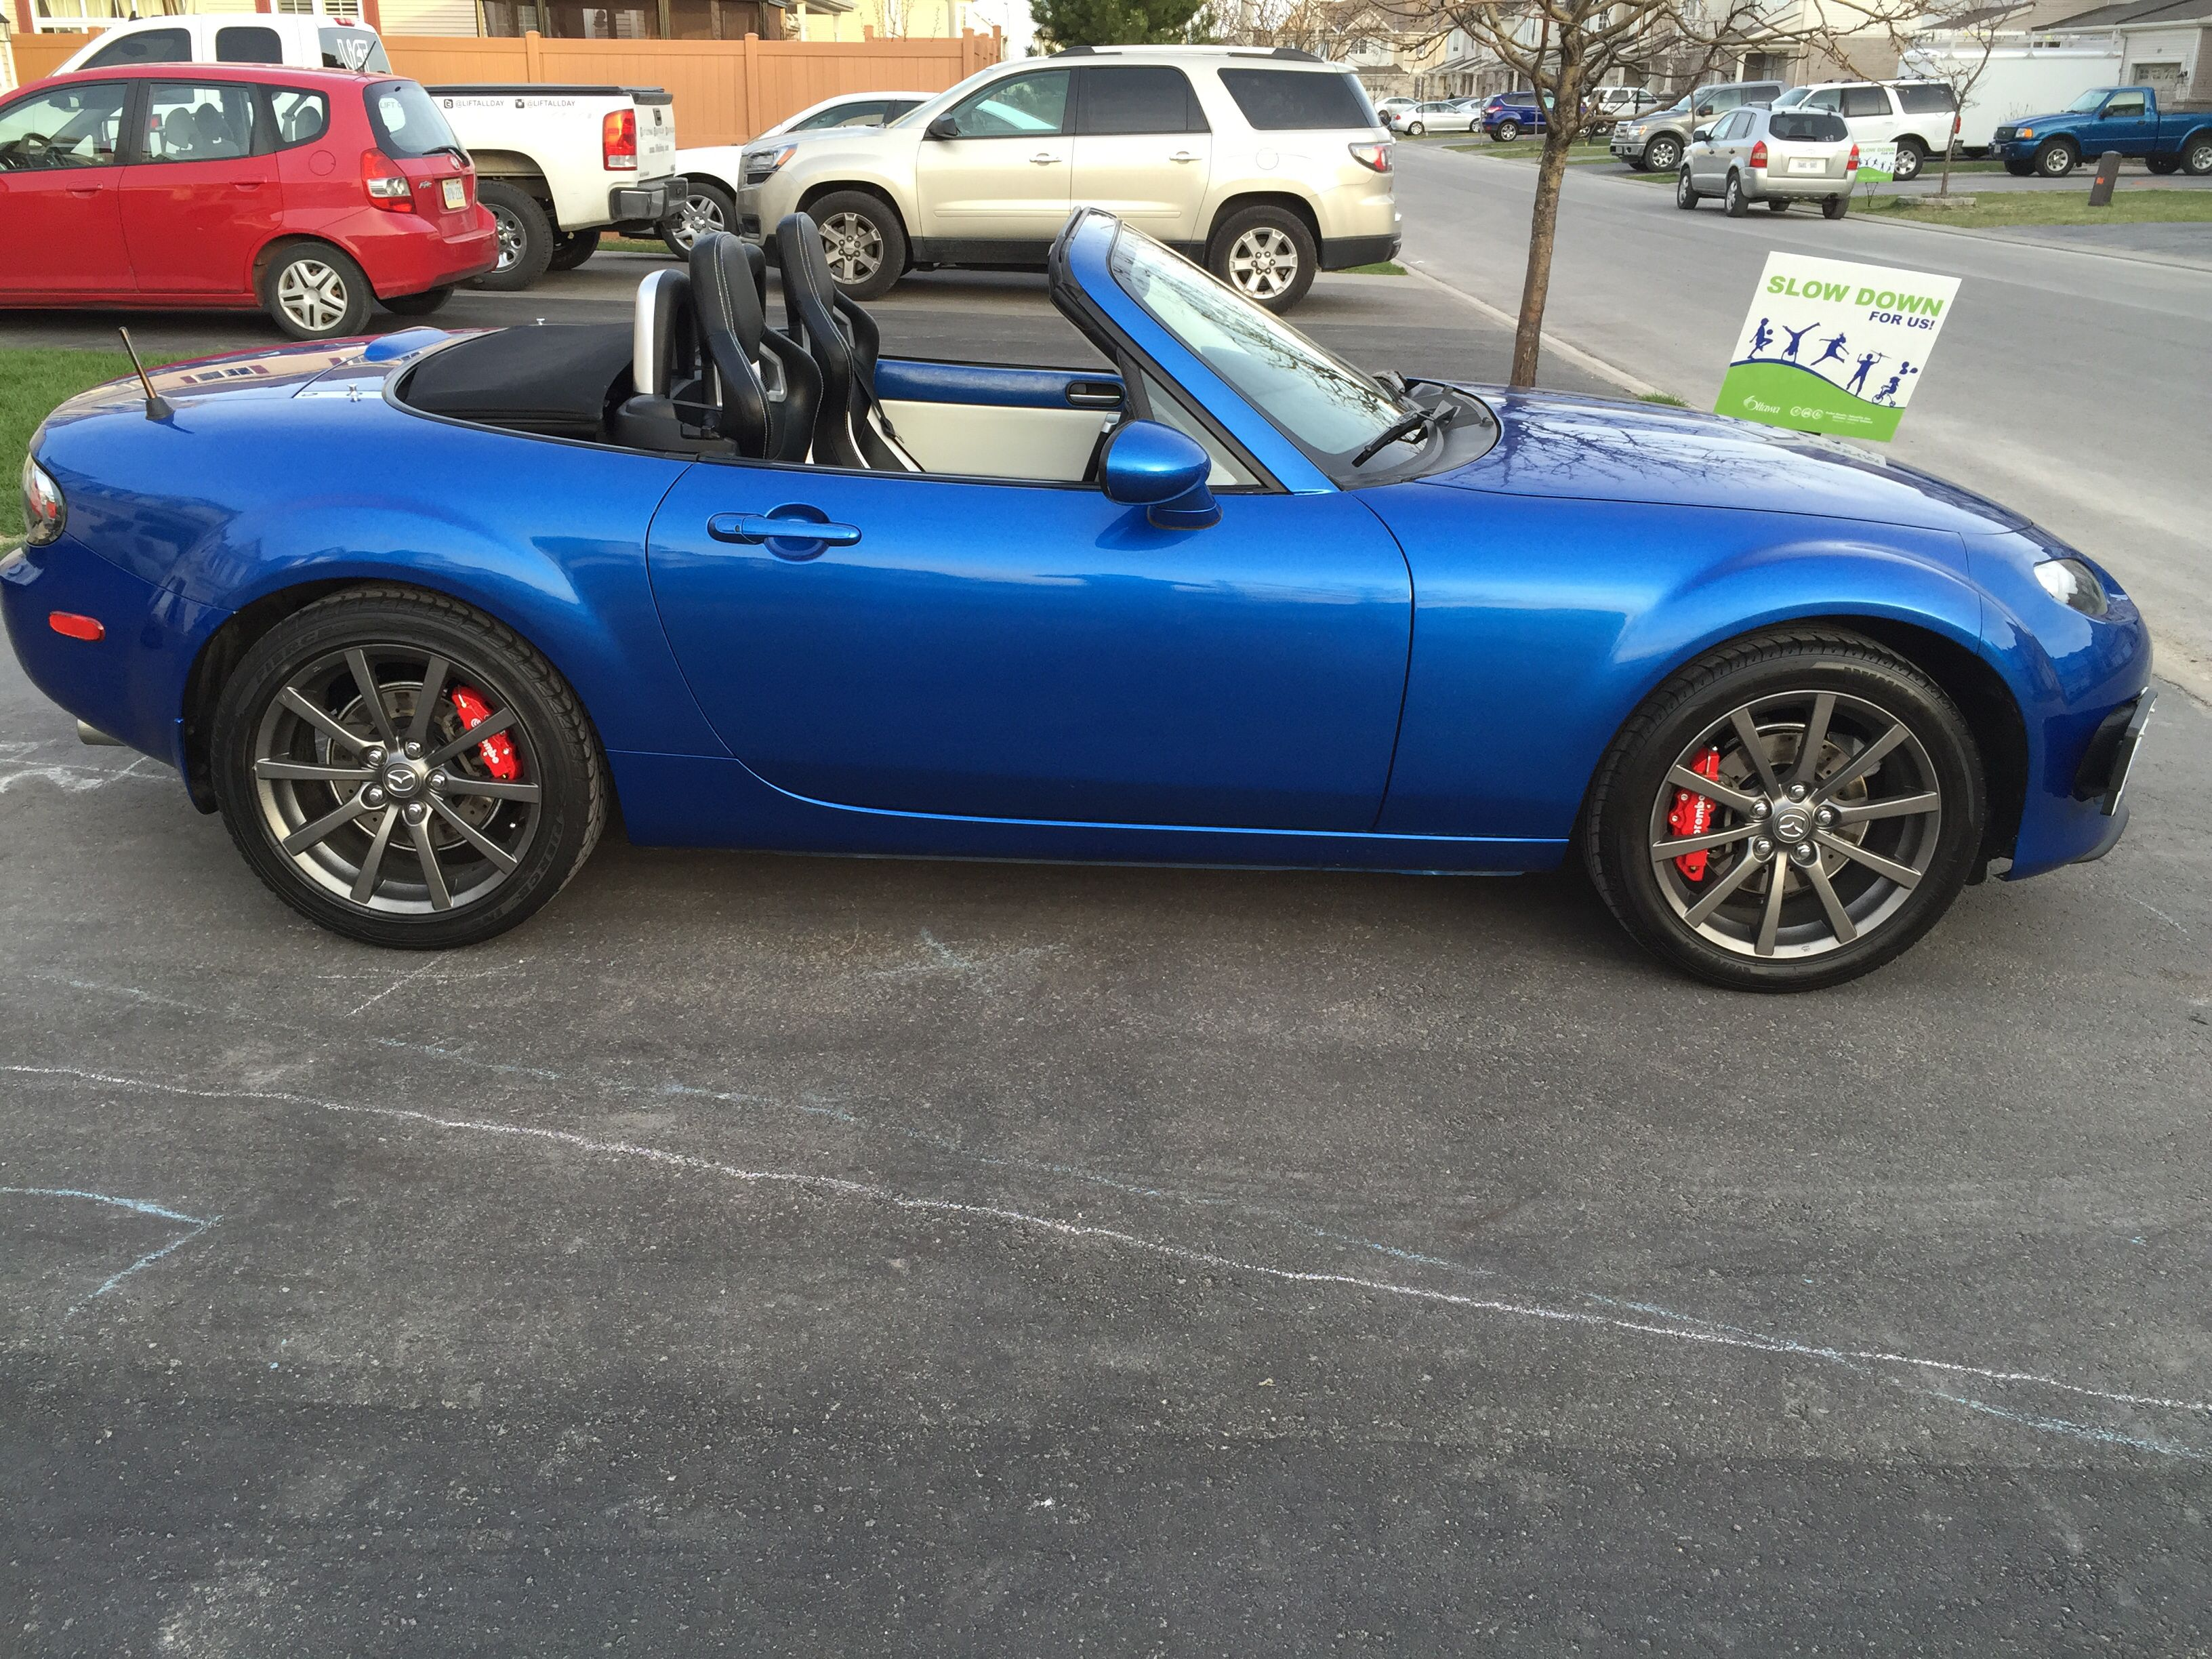 blue on sale find images mx for best mazda winning bigblockentmt bumper miata by pin and this more nc swap